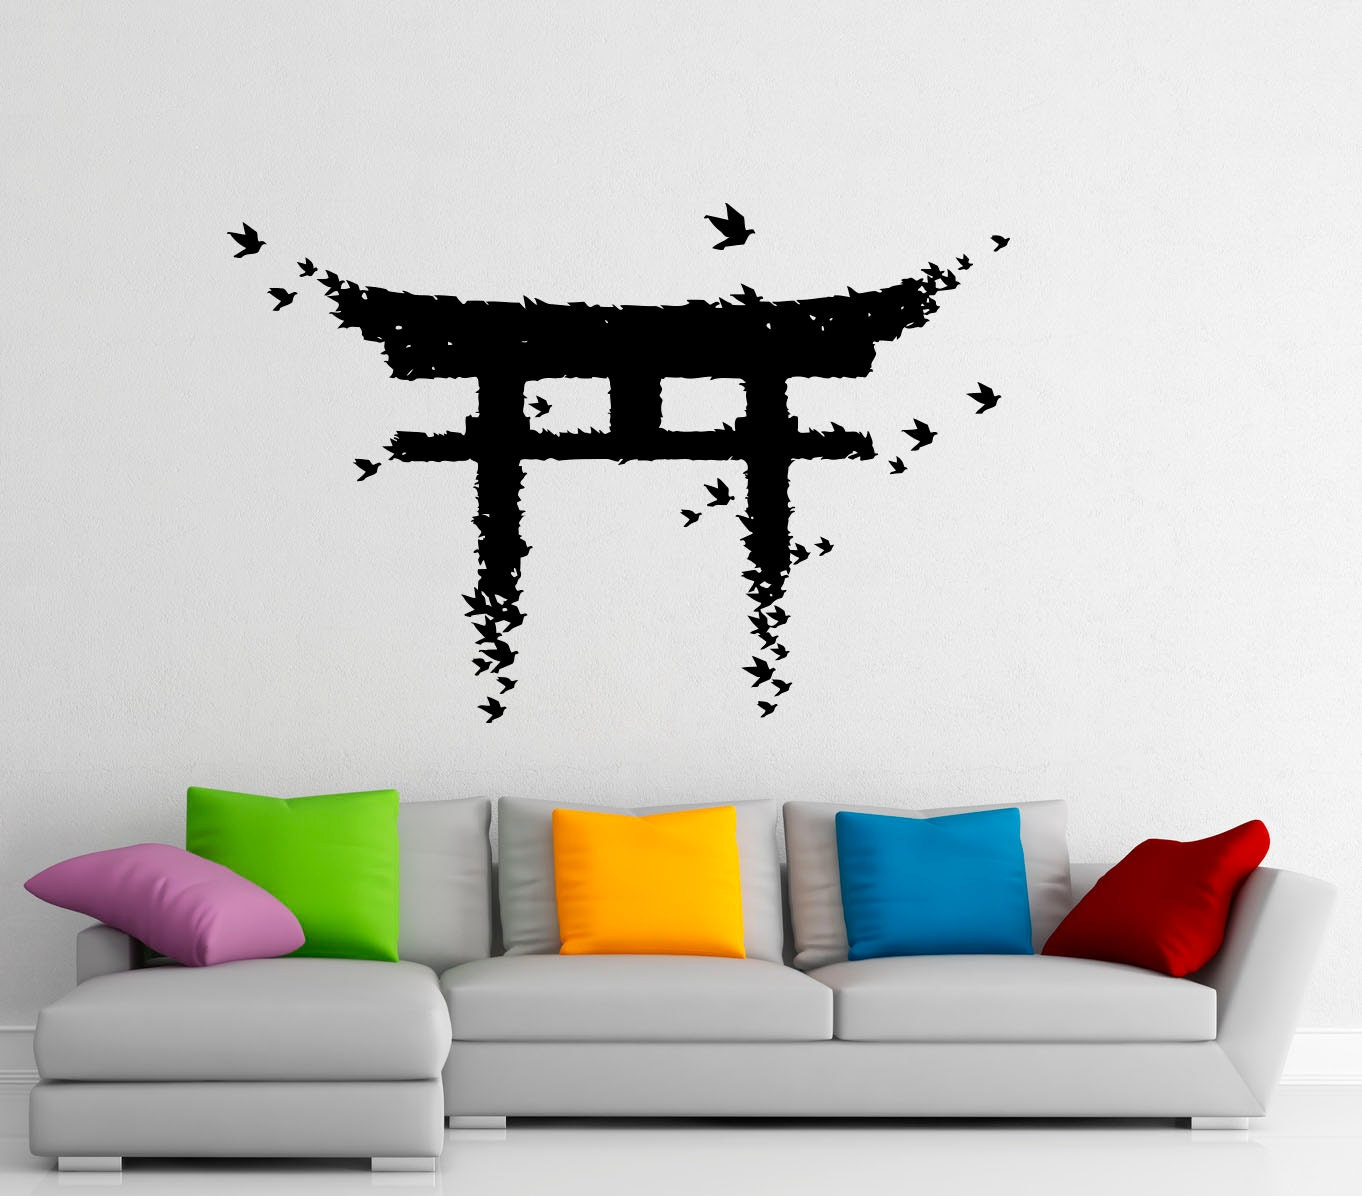 Torii japanese gate wall sticker vinyl decal japanese culture for Asian wall decoration